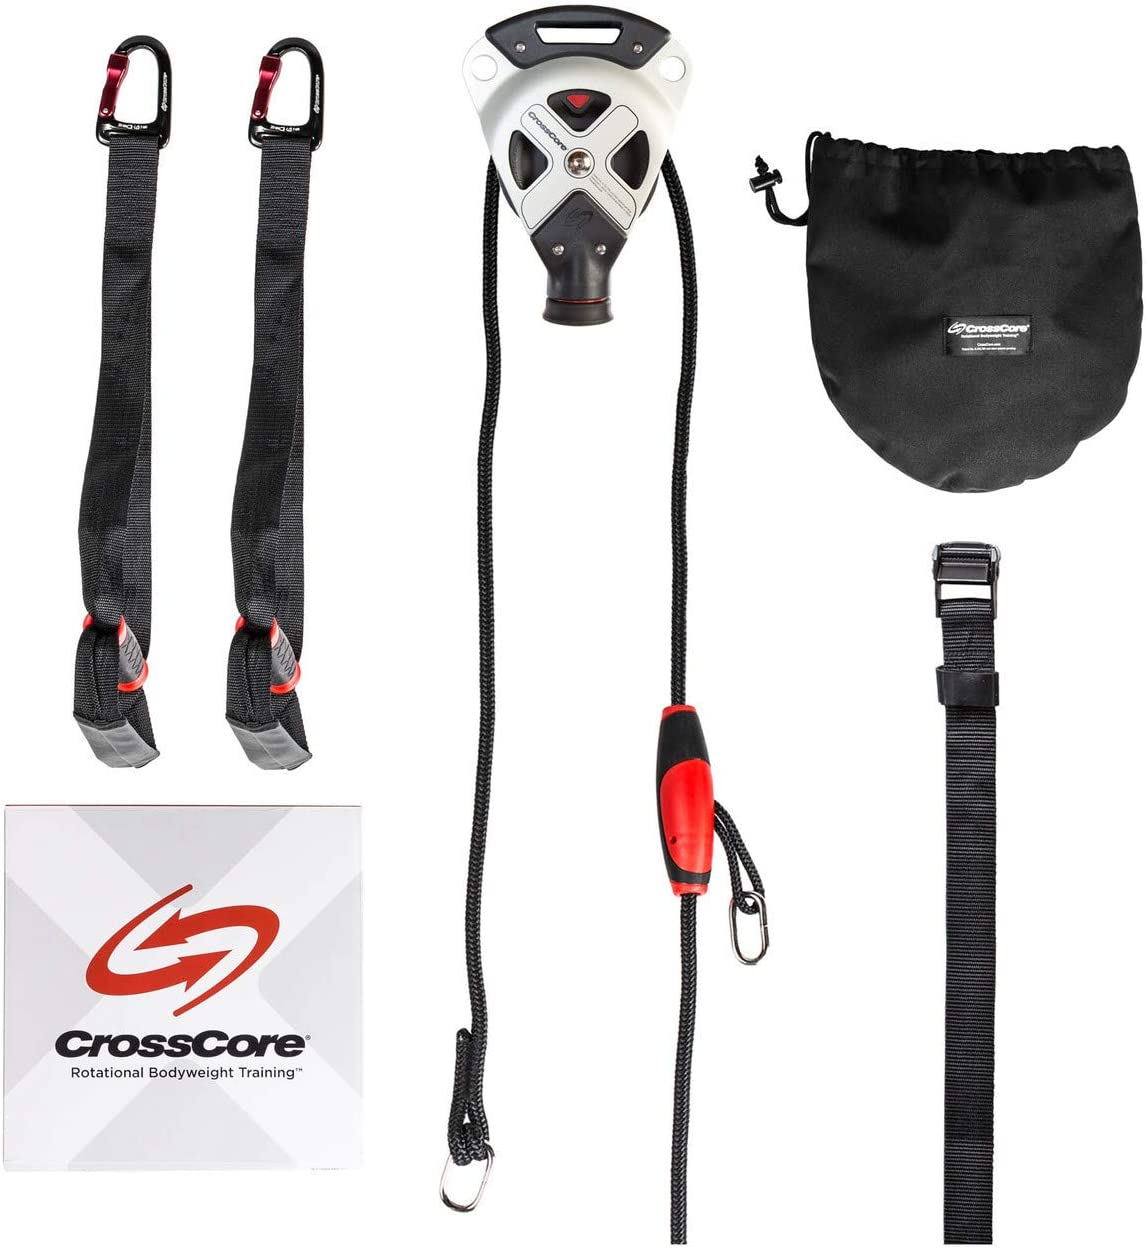 CrossCore Rotational Bodyweight Training System